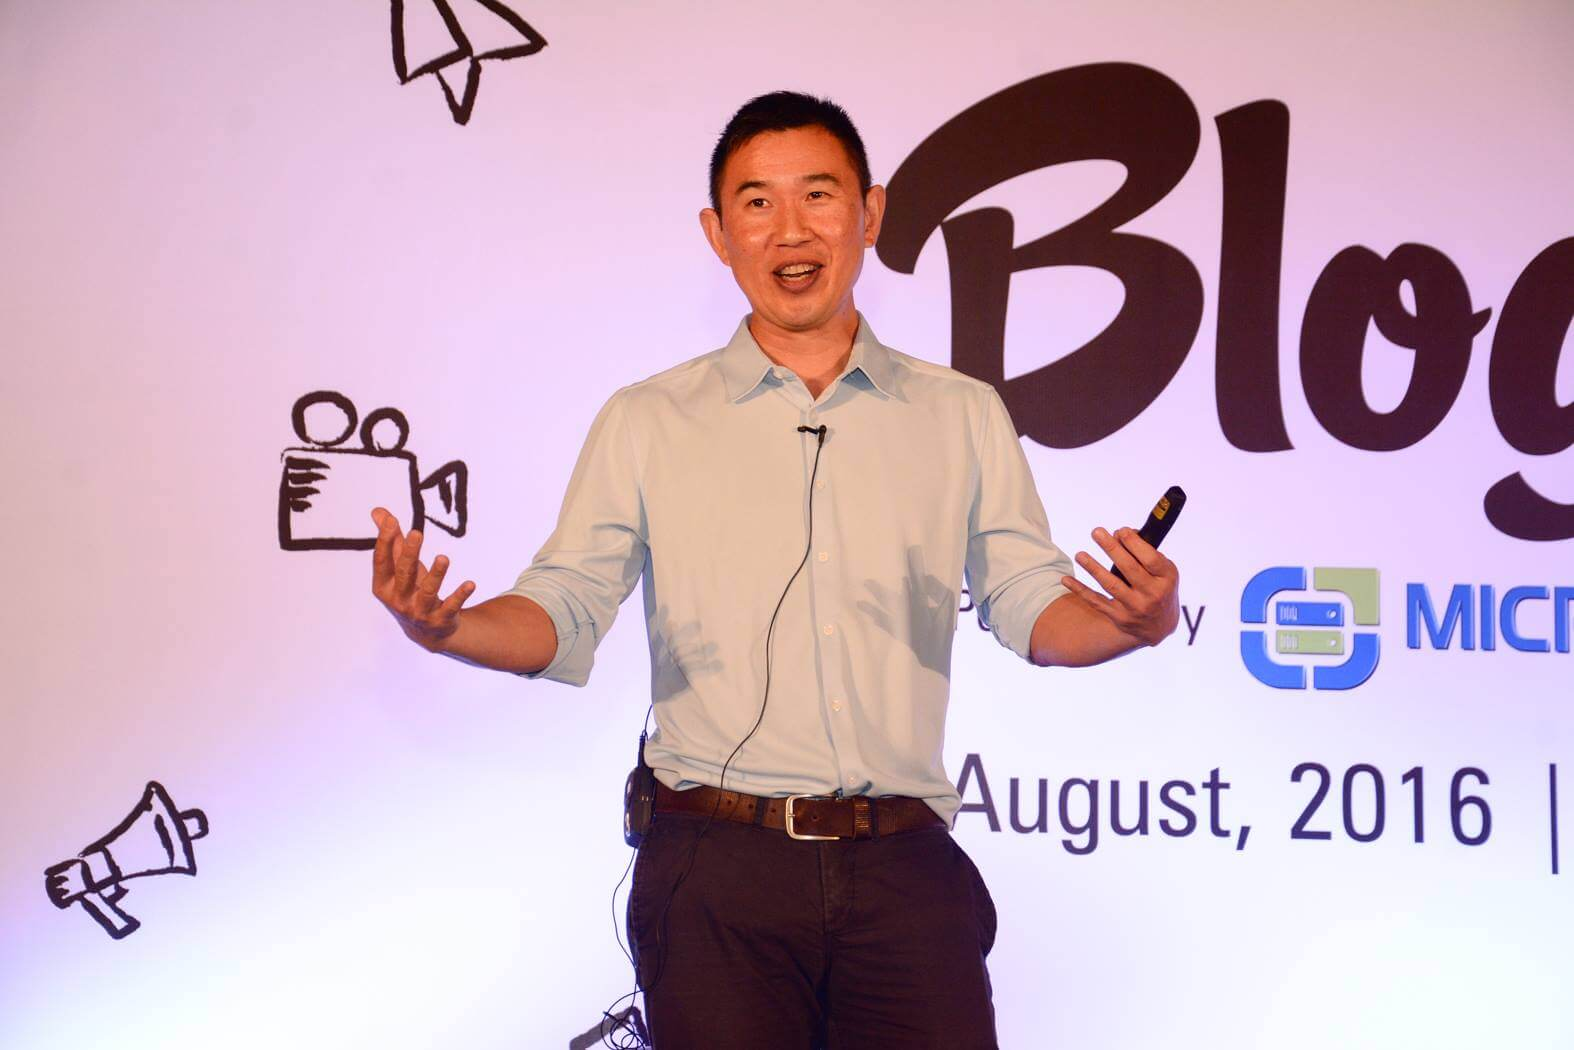 jon yau at blogx